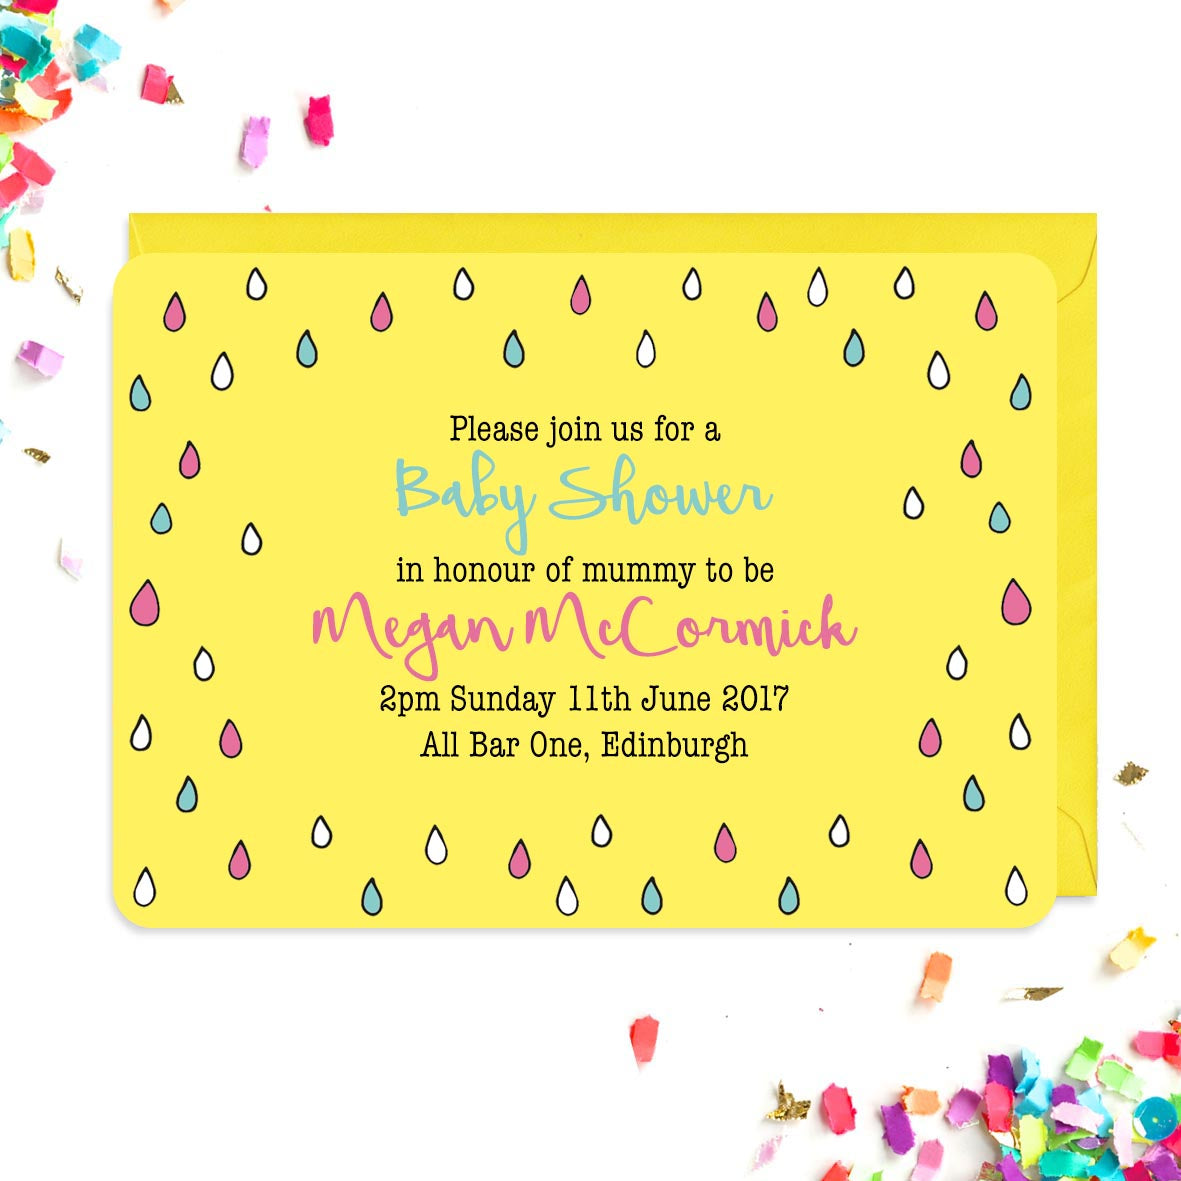 Baby shower invitation covered in colourful raindrops